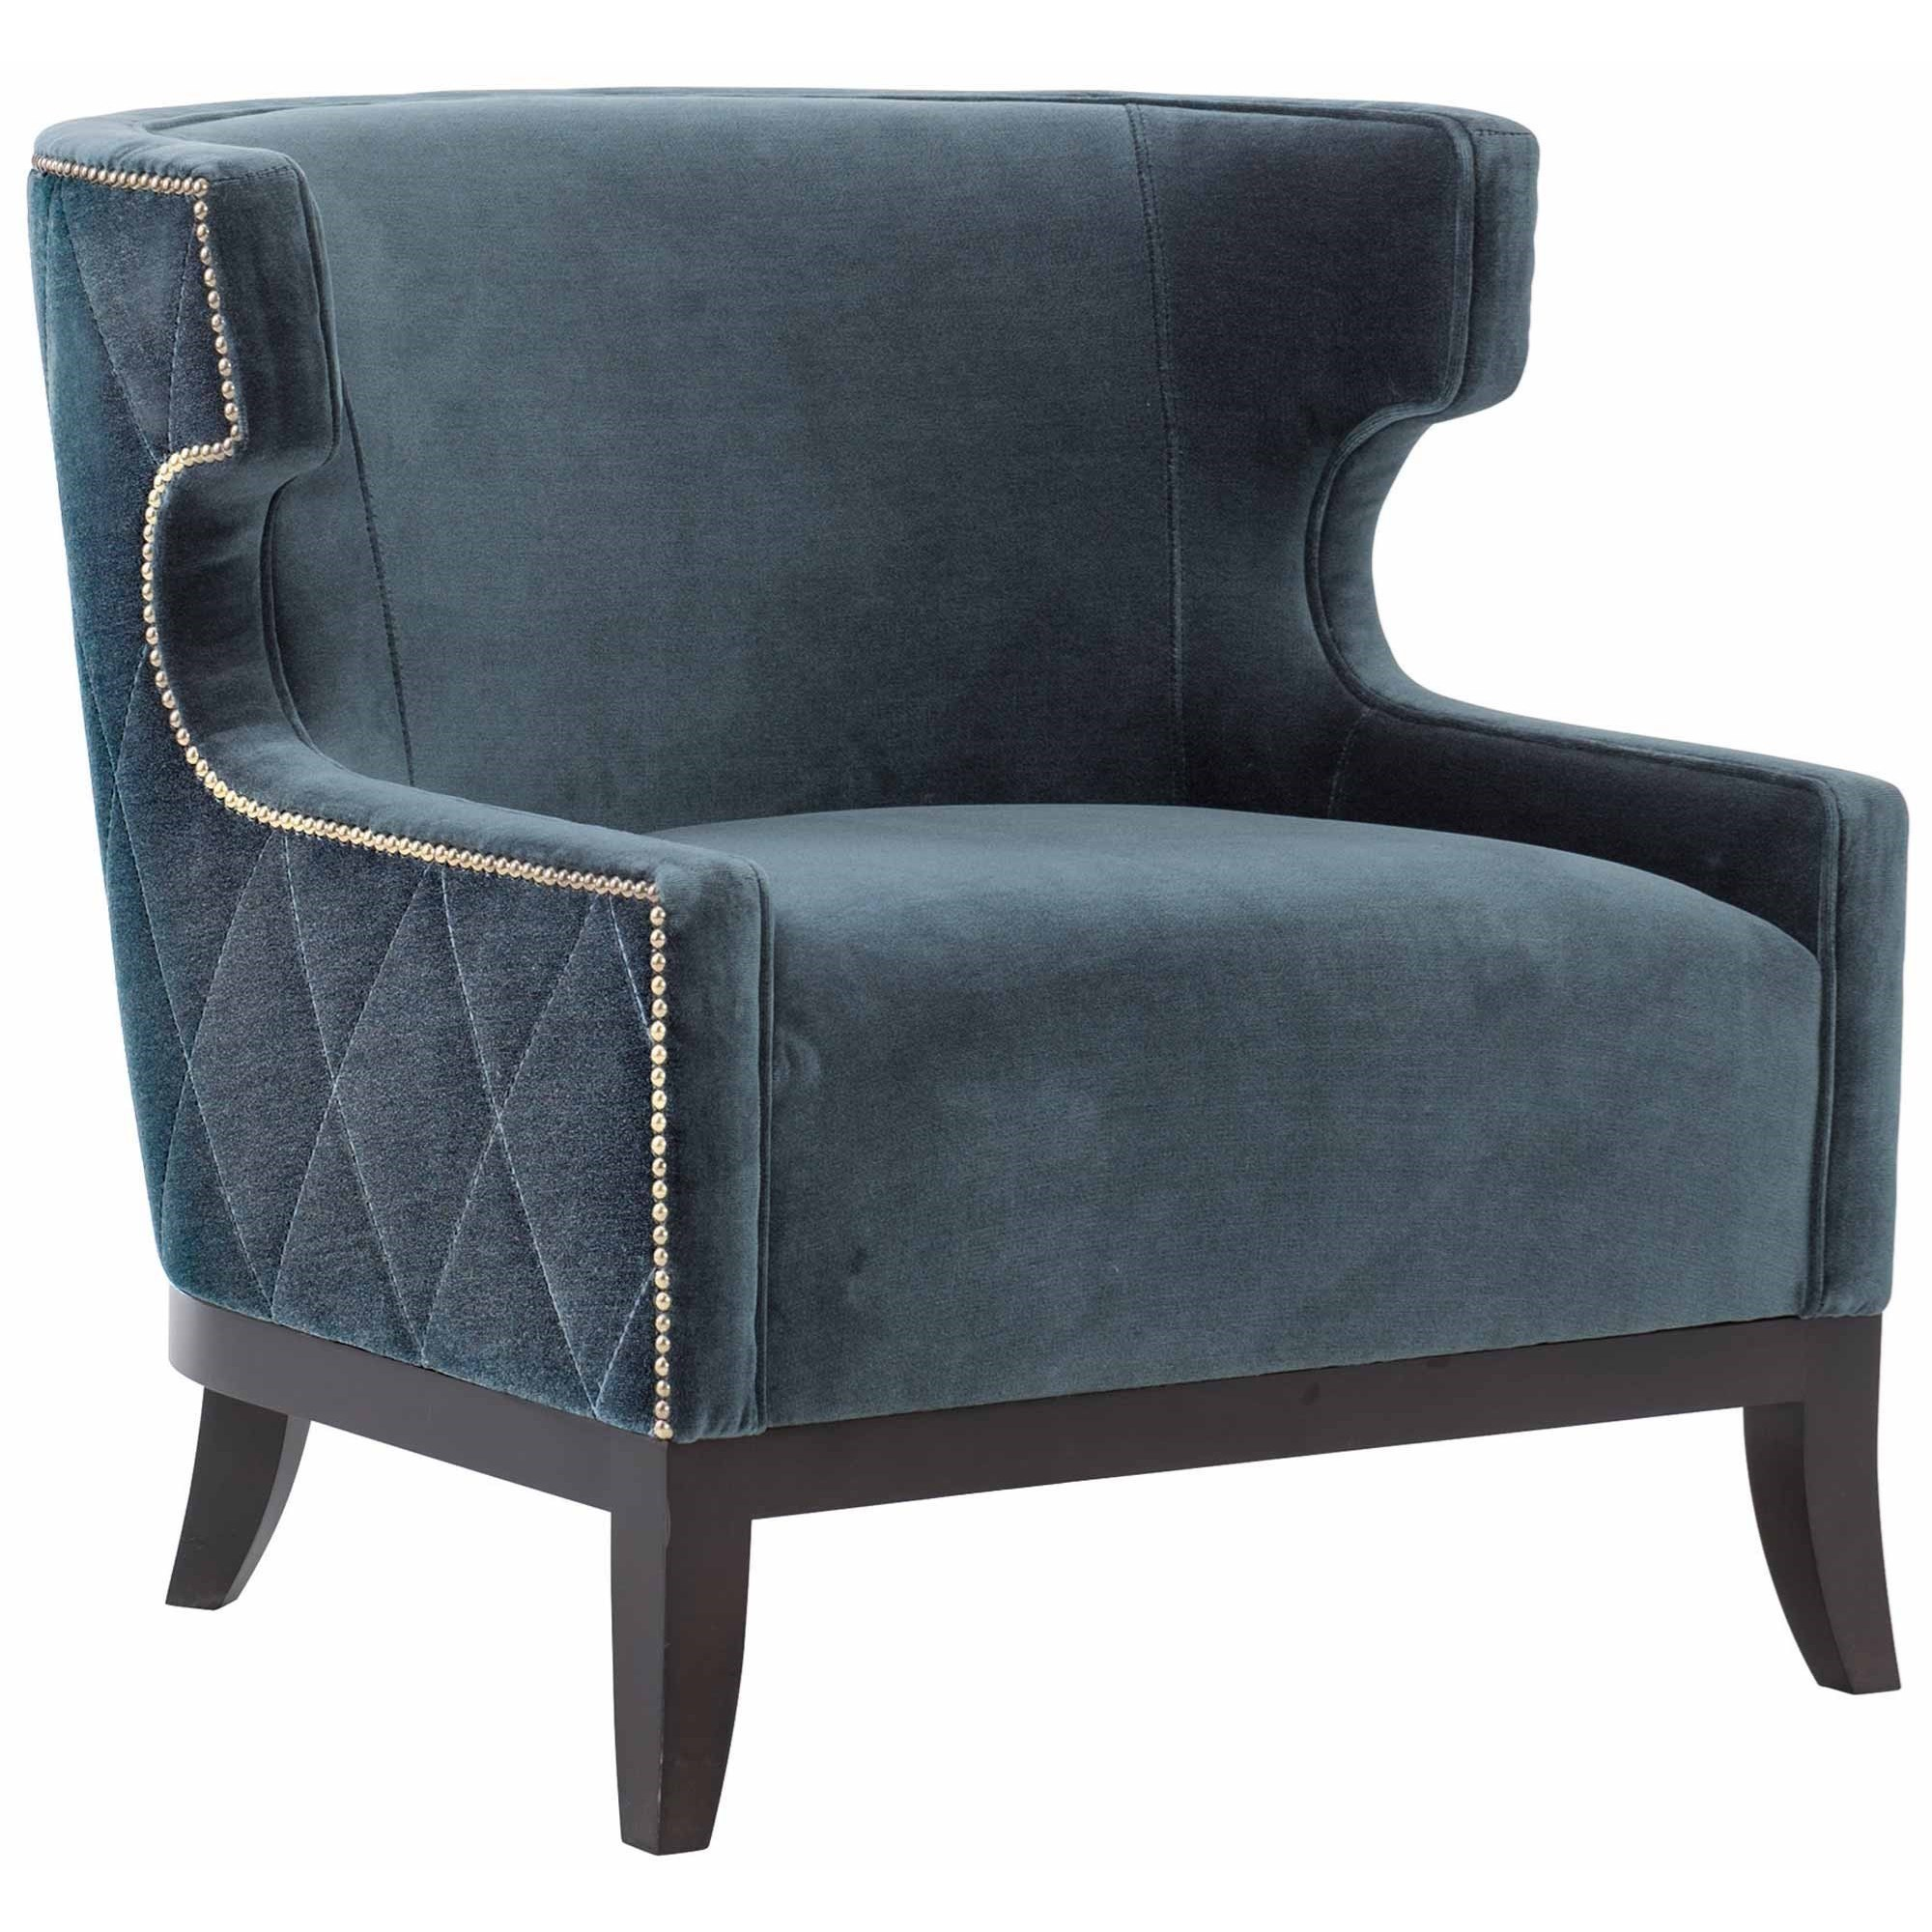 Bernhardt Emma Transitional Barrel Back Chair With Nailheads And Diamond Stitching Sheely S Furniture Appliance Upholstered Chairs